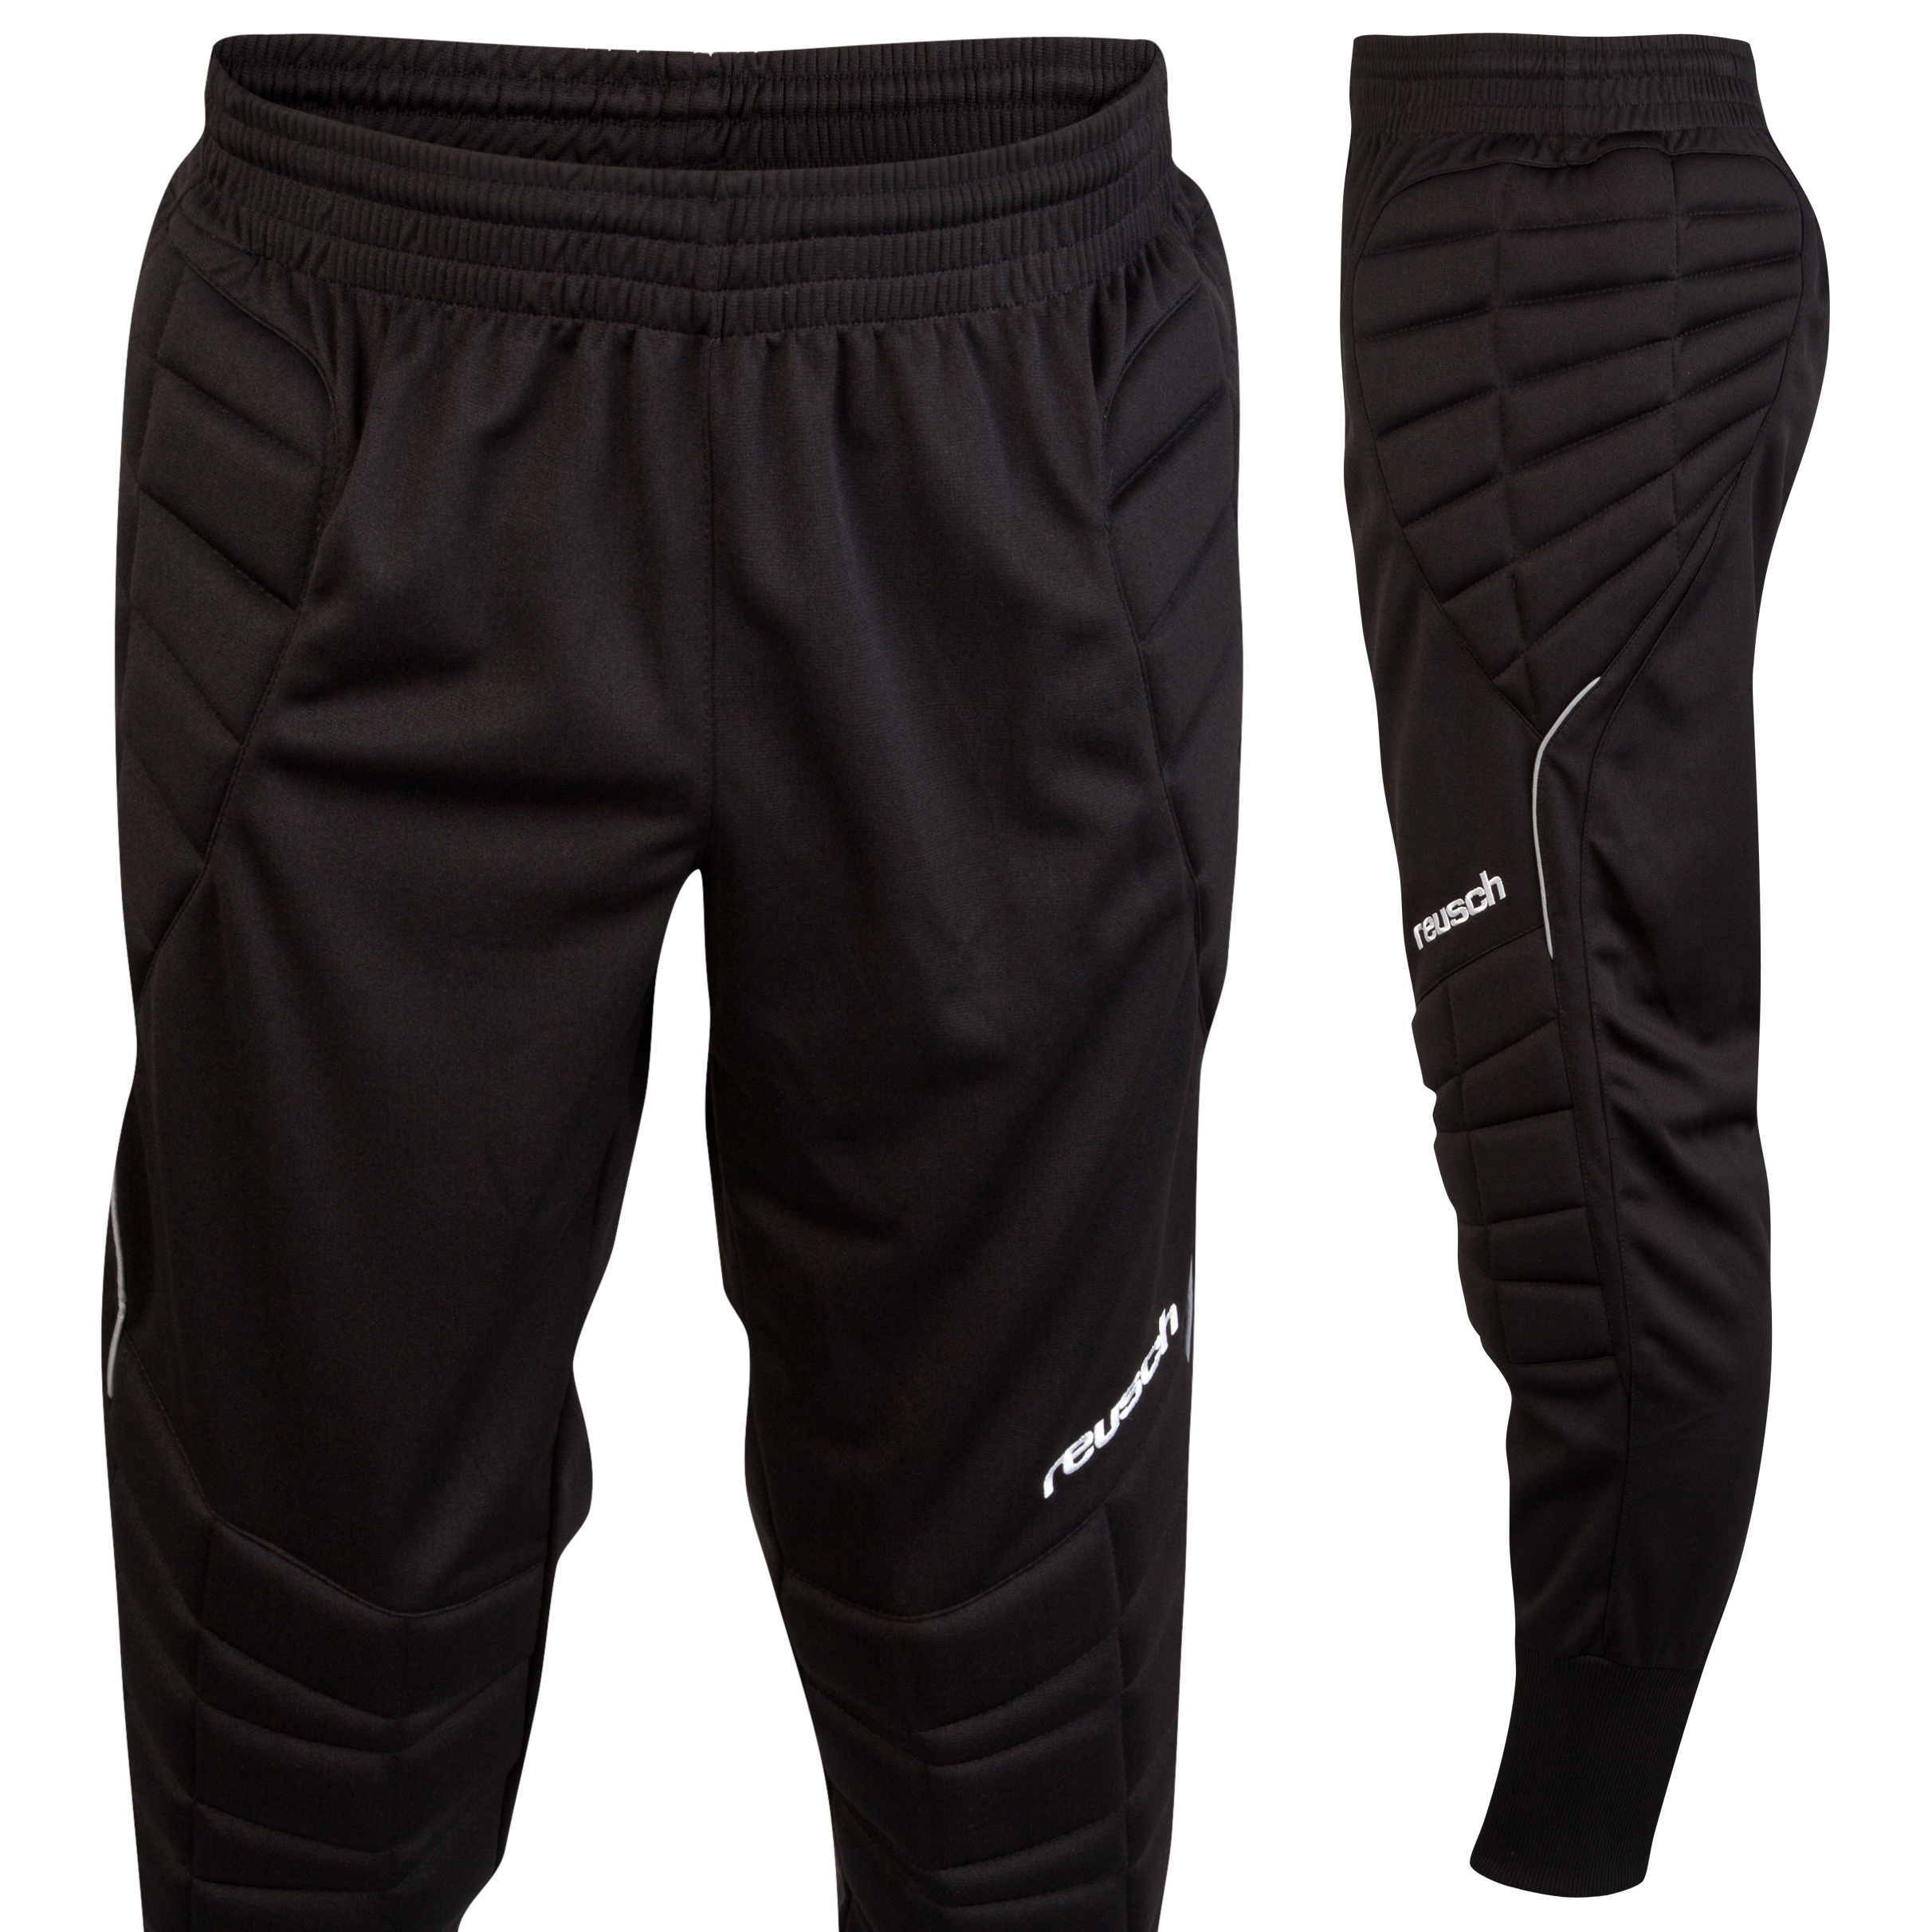 Reusch Goalkeeping Pants-Black